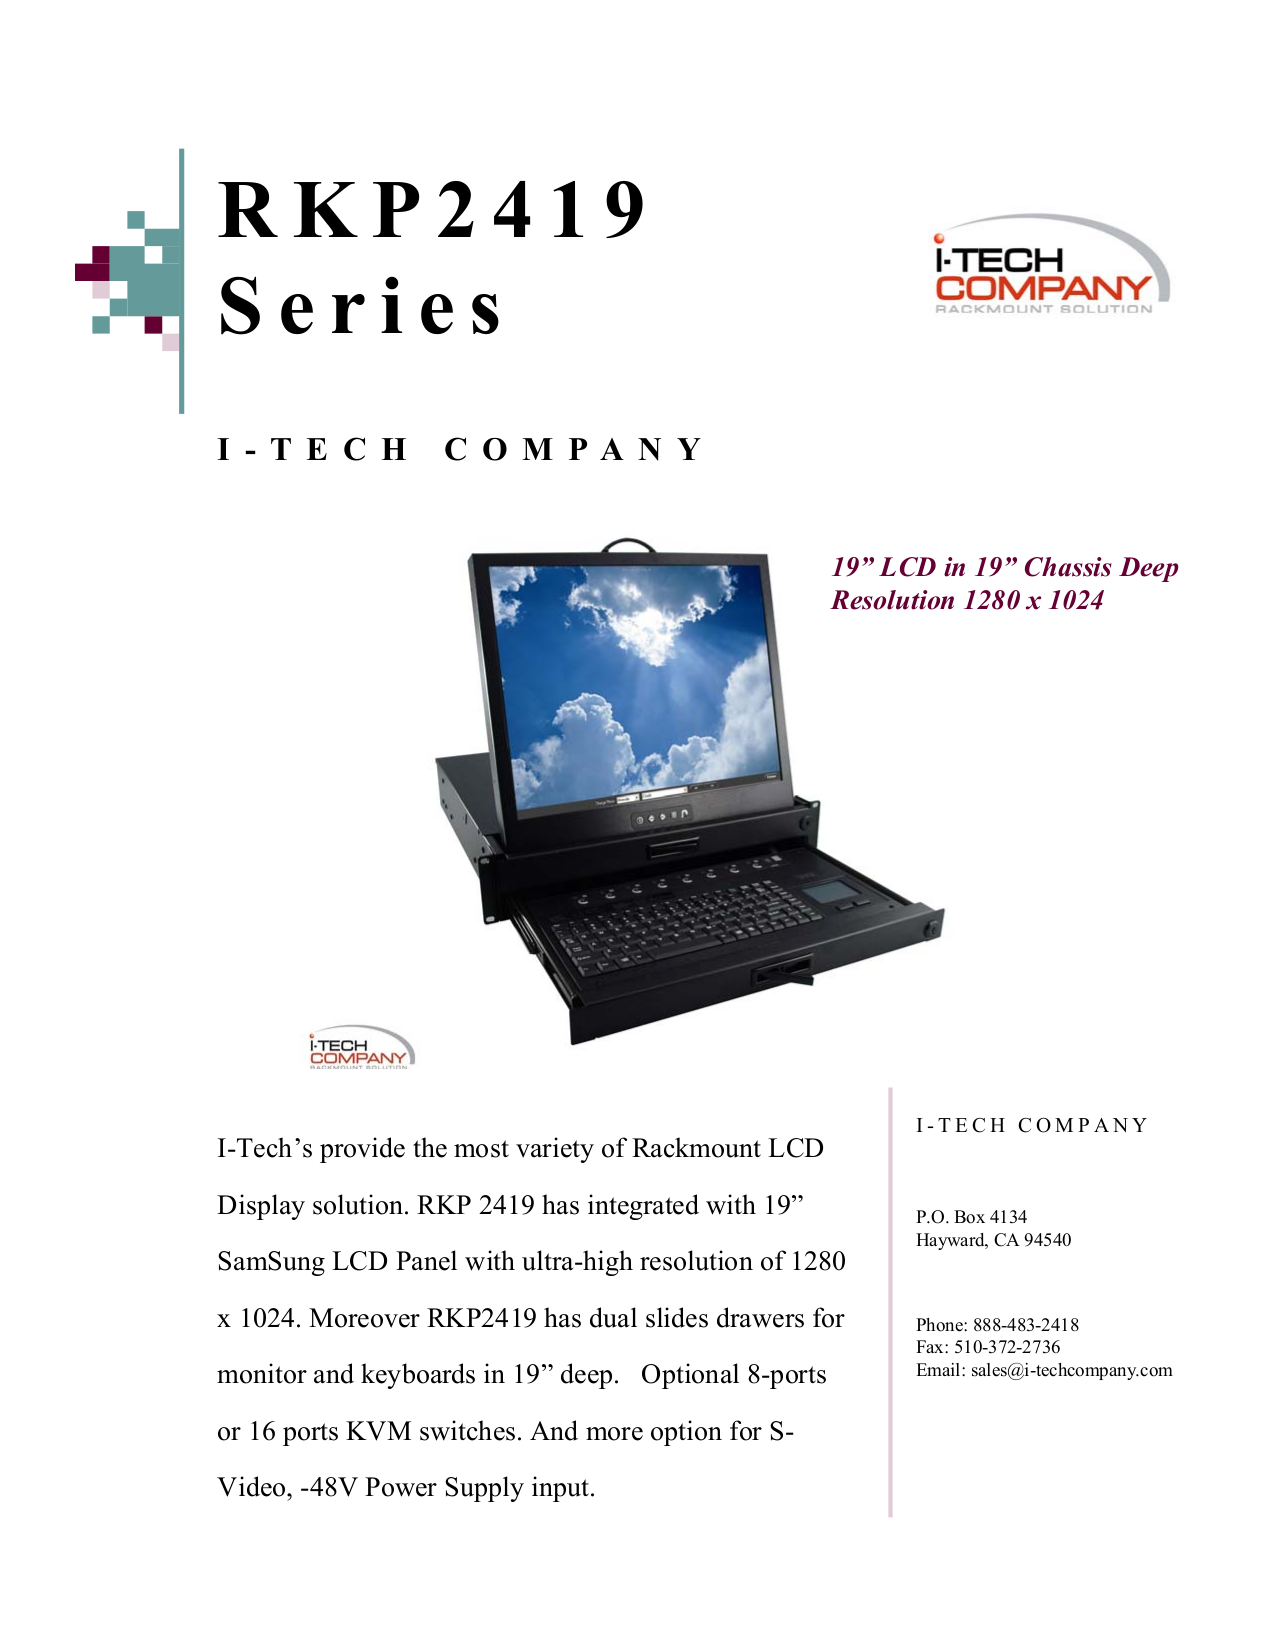 pdf for I-Tech Other RKP2419 Keyboard Drawers manual